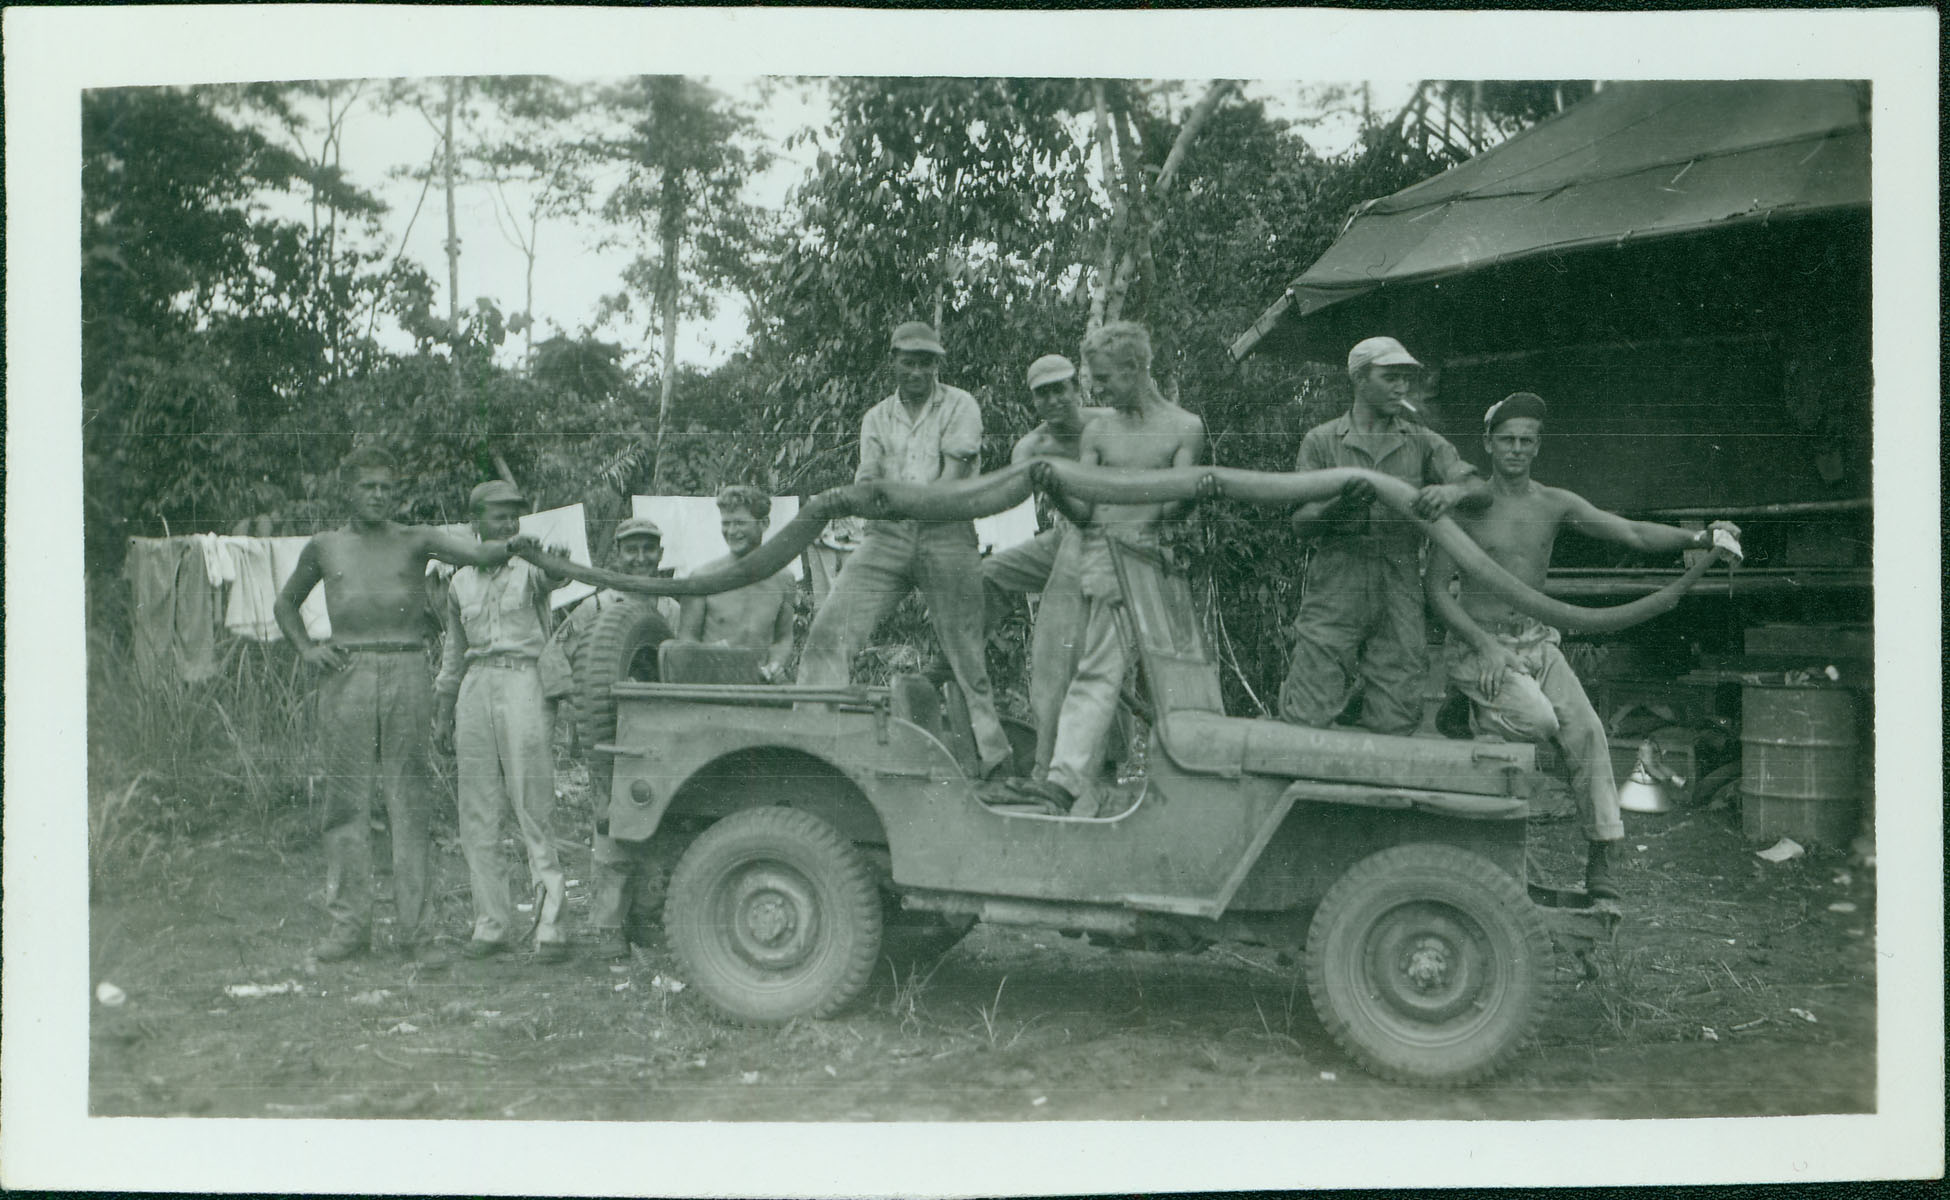 Men with large snake on jeep [RG5841-9-11]